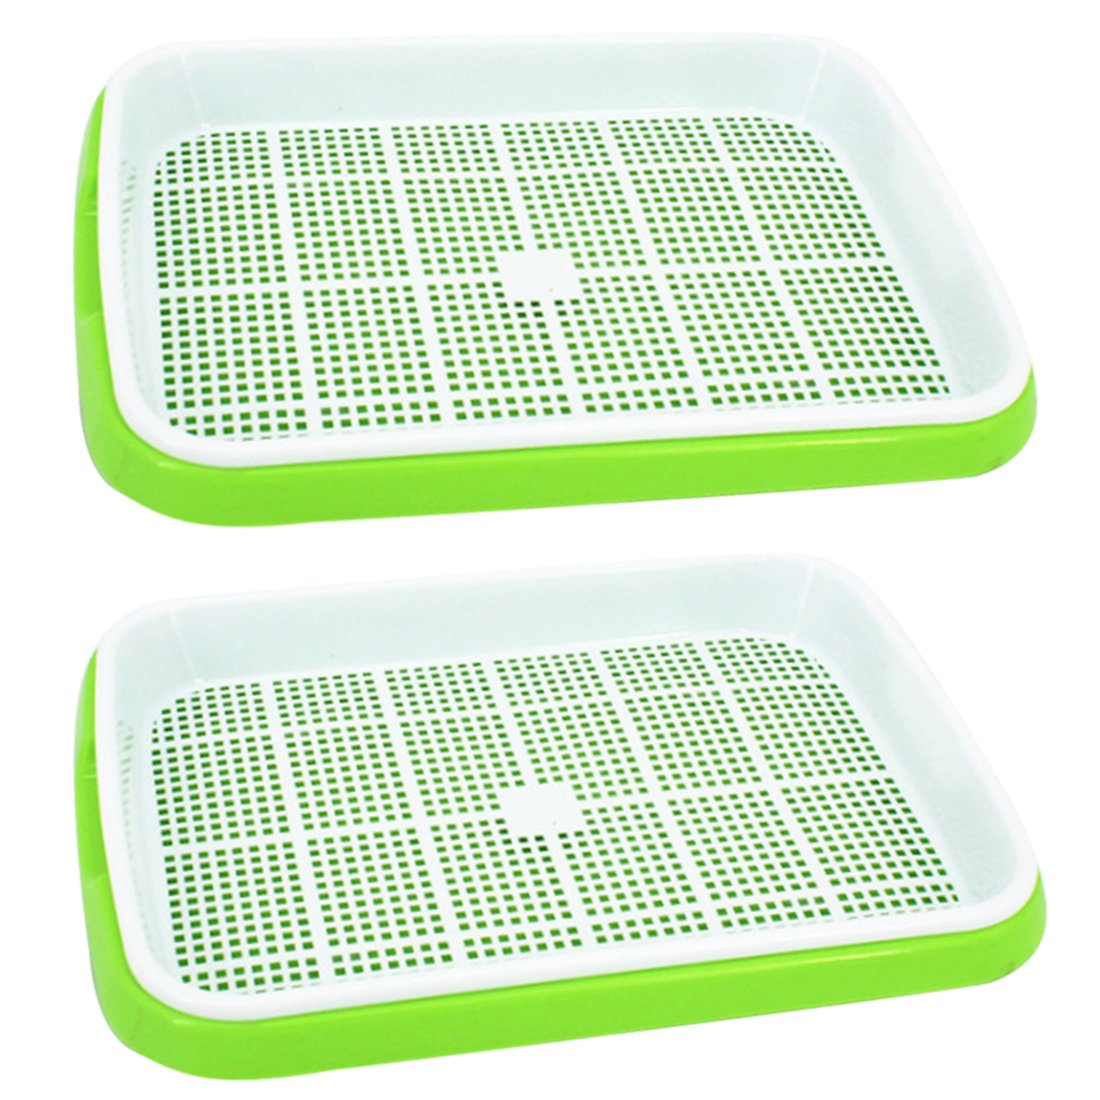 Seed Sprouter Tray, Yamix 2 Set Two-Tiered Seed Sprouter Tray Kitchen Crop Sprouter Germination Tray Hydroponics Basket (Green + White)